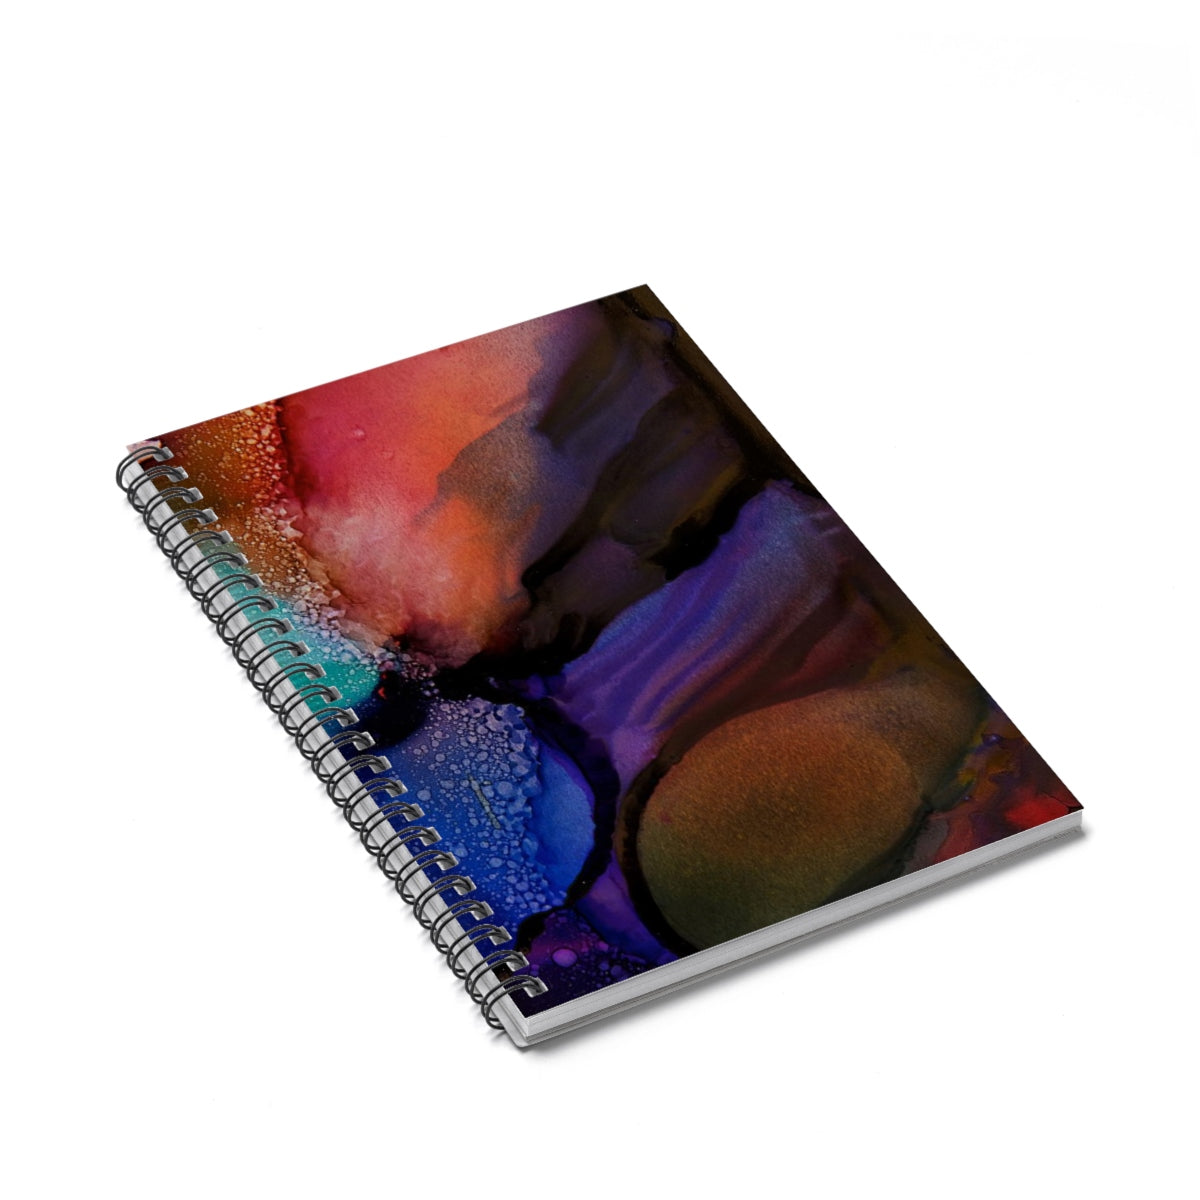 Mars and Venus Spiral Notebook - Ruled Line